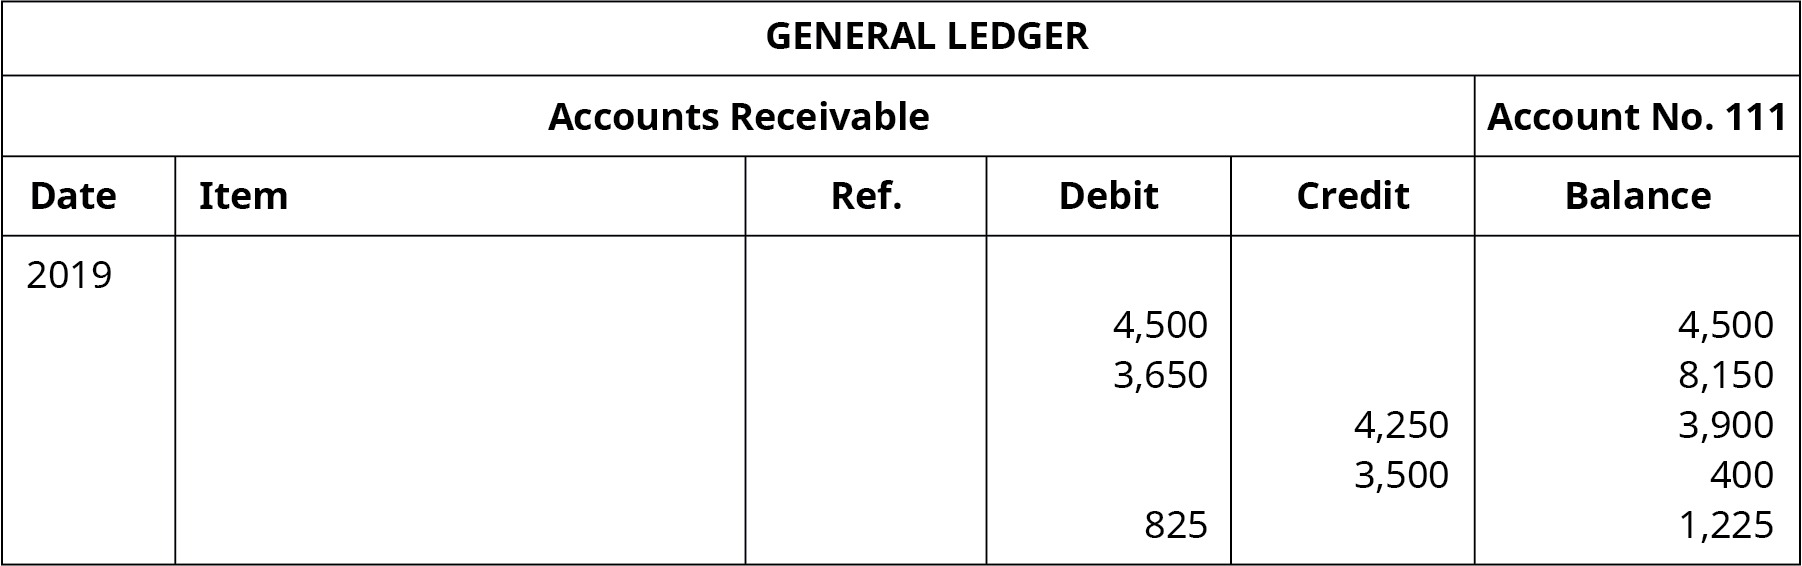 """A General Ledger titled """"Accounts Receivable No. 111"""" with six columns. Date: 2019. Six columns labeled left to right: Date, Item, Reference, Debit, Credit, Balance. Debit: 4,500; Balance: 4,500. Debit: 3,650; Balance: 8,150. Credit: 4,250; Balance: 3,900. Credit: 3,500; Balance: 400. Debit: 825; Balance: 1,225."""